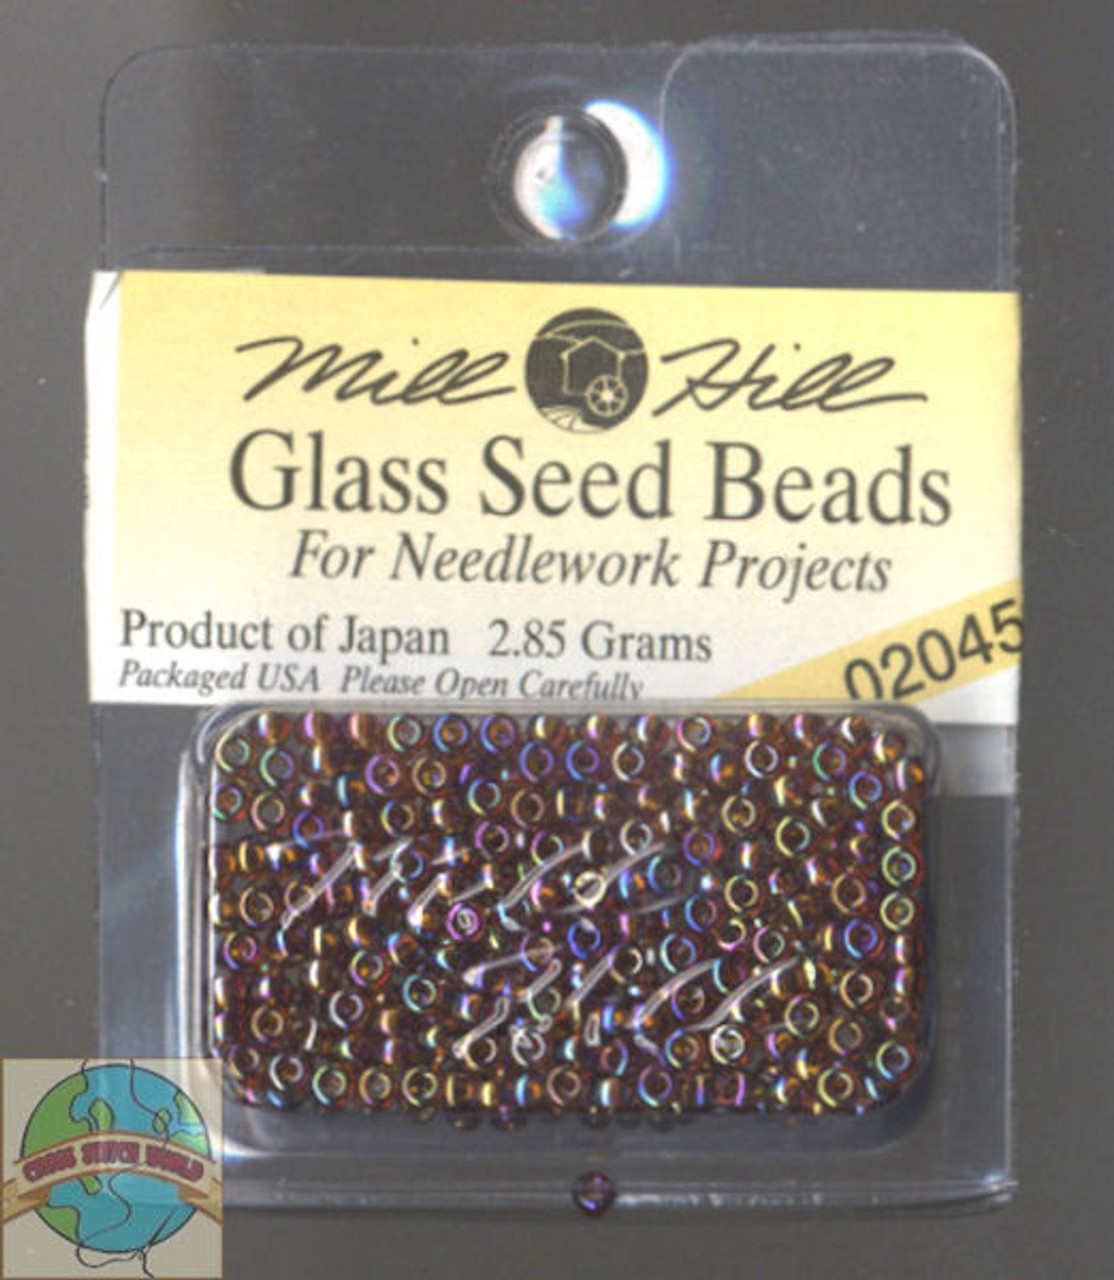 Mill Hill Glass Seed Beads 2.85g Santa Fe Sunset #02045